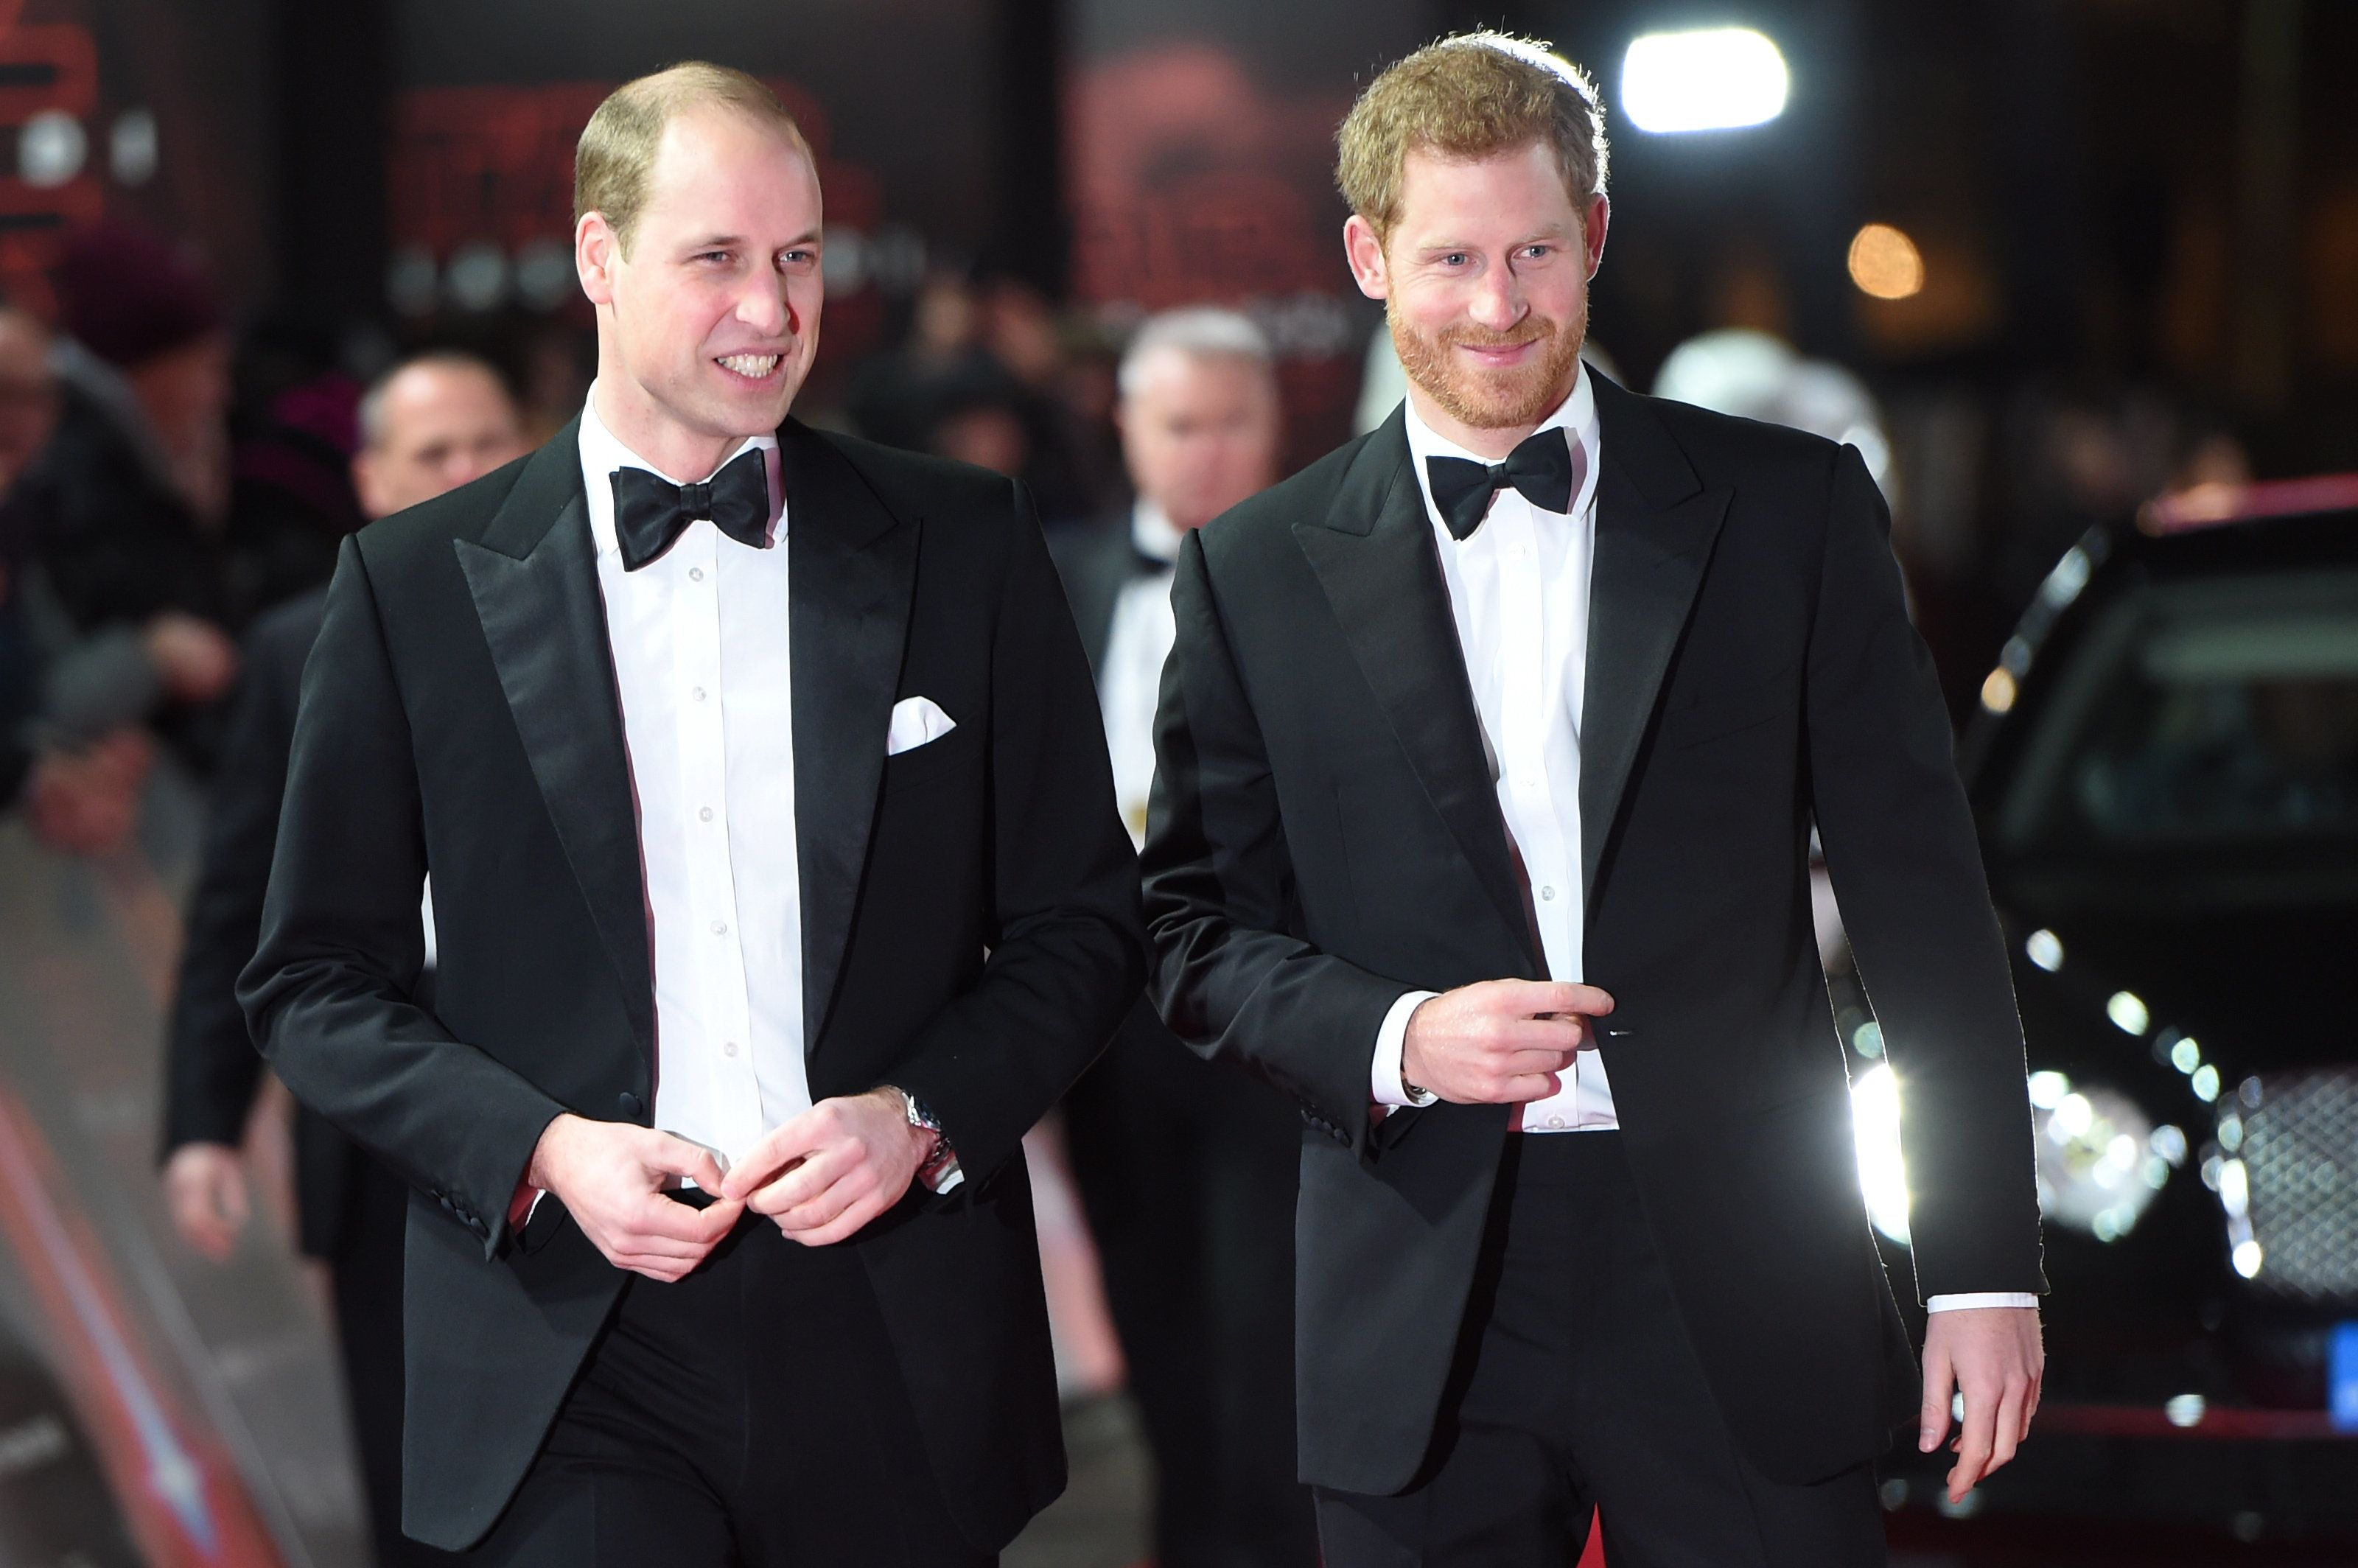 Prince Harry's Popularity Surges Ahead Of His Wedding, But He Still Trails